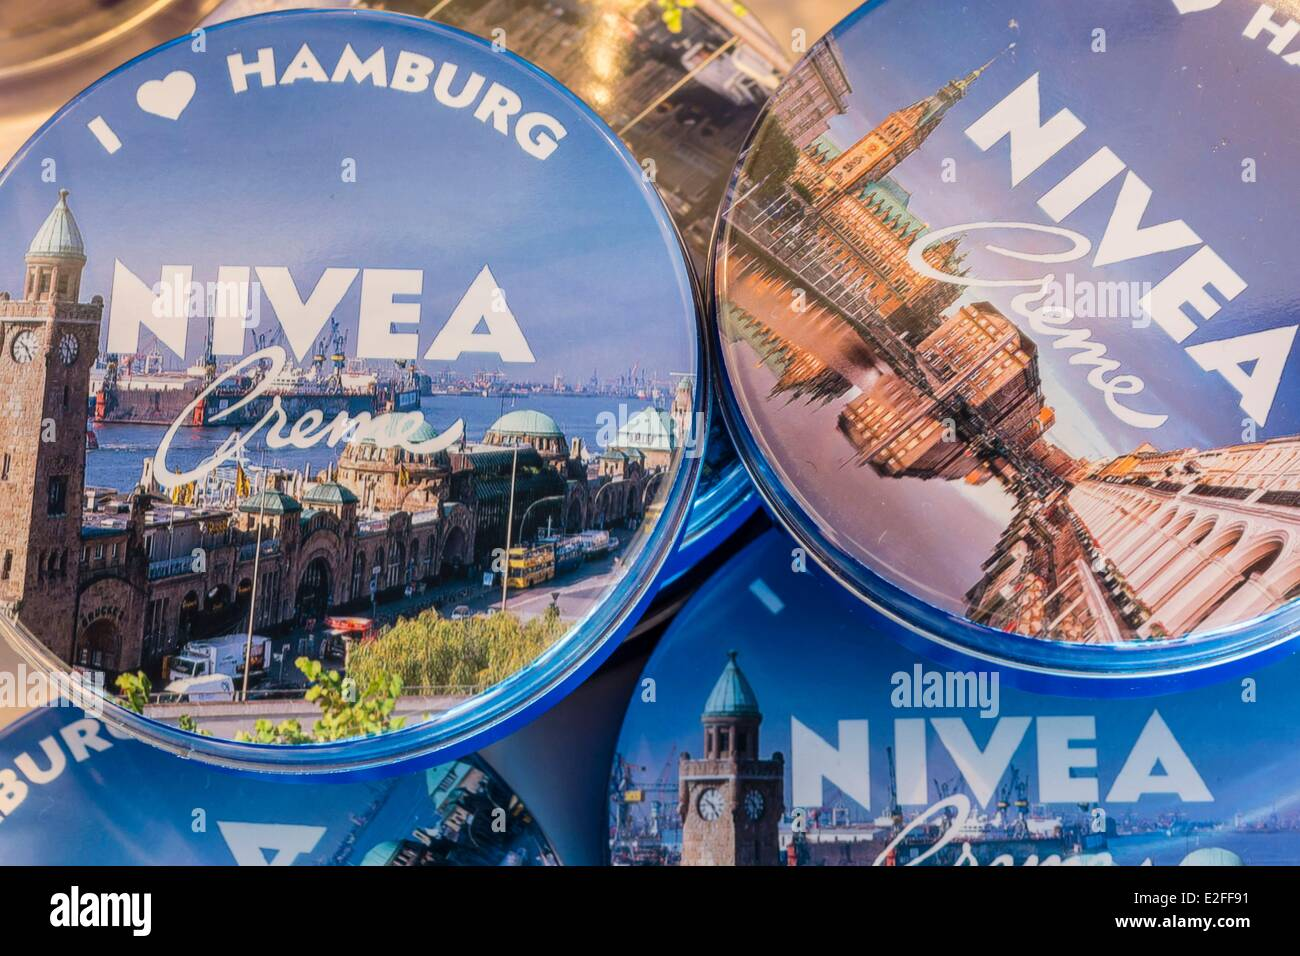 Stock Photo - Germany, Hamburg, Nivea Haus, Nivea cream locally founded in 1911 and belonging to the German group Beiersdorf, limited editions